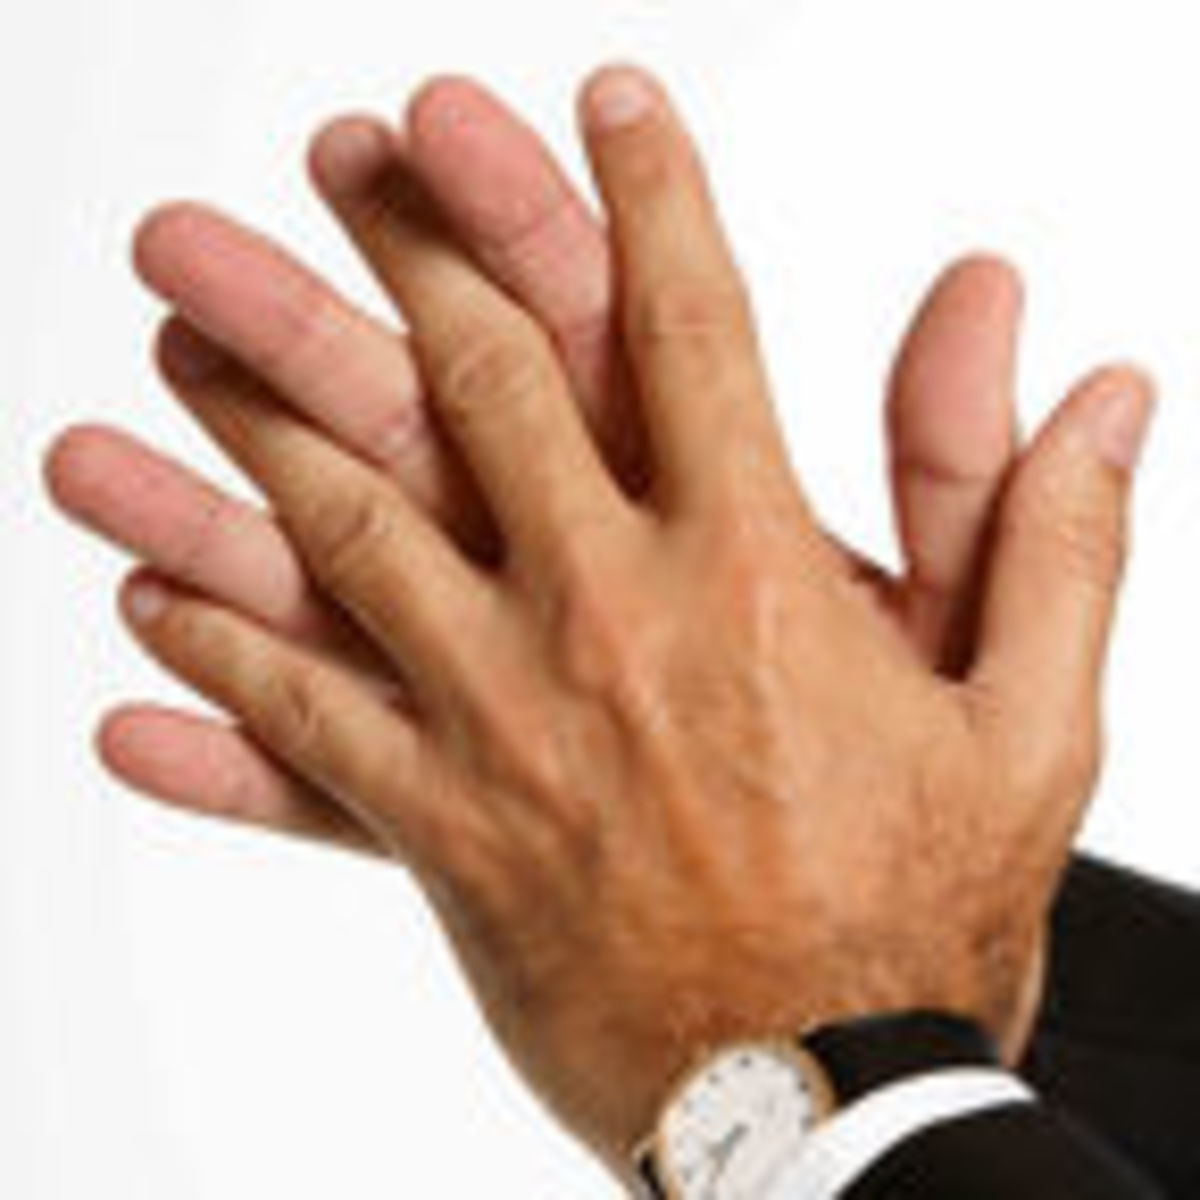 Body Language of the Hands | Psychology Today